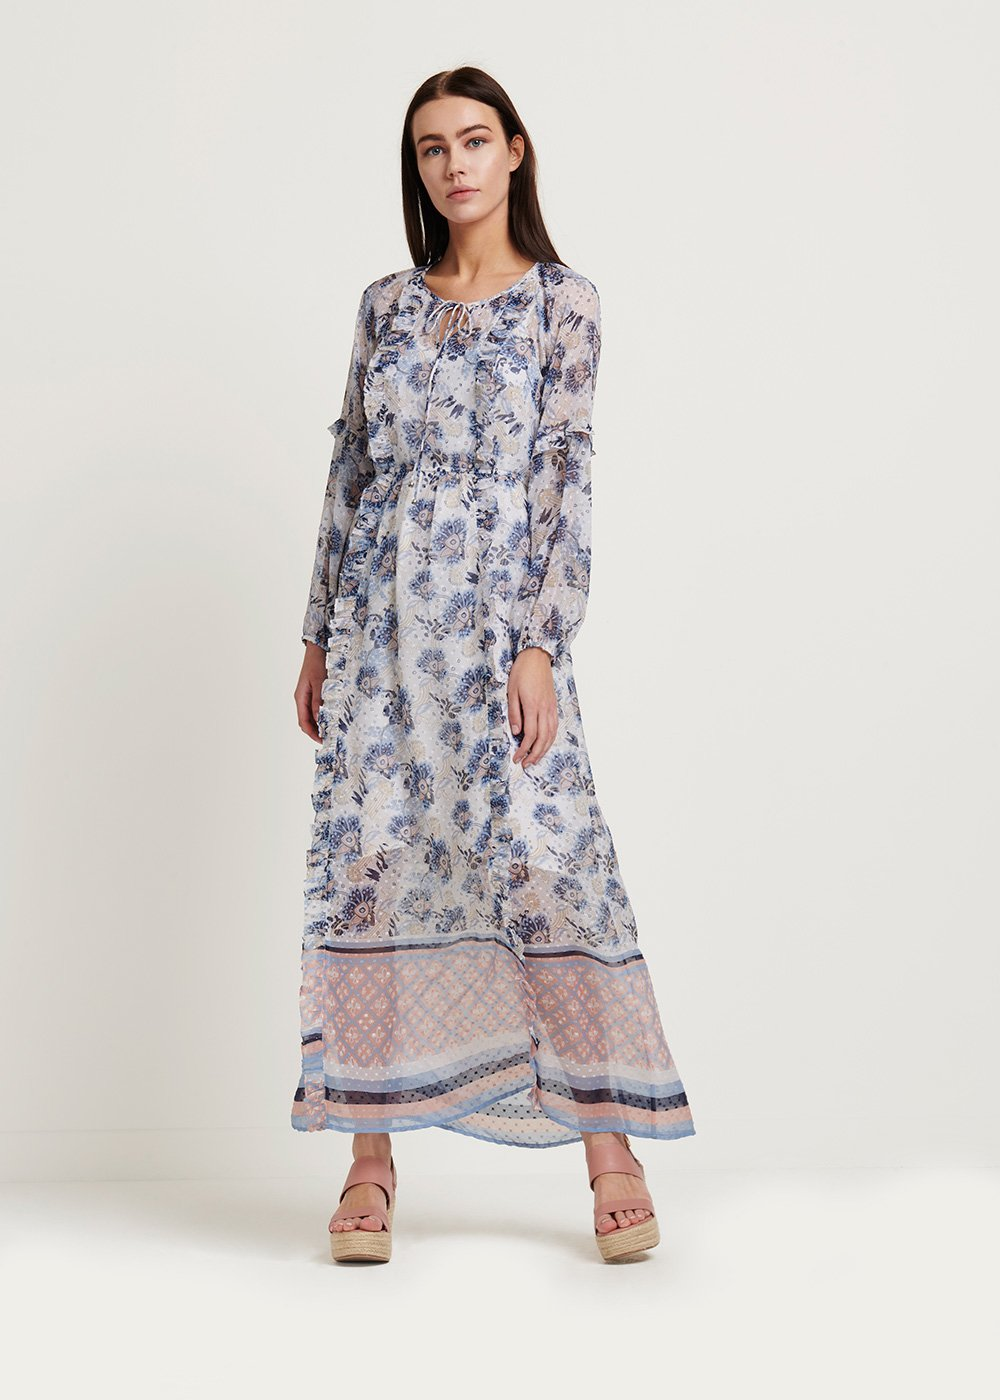 Alessio dress with floral pattern - White\ Avion\ Fantasia - Woman